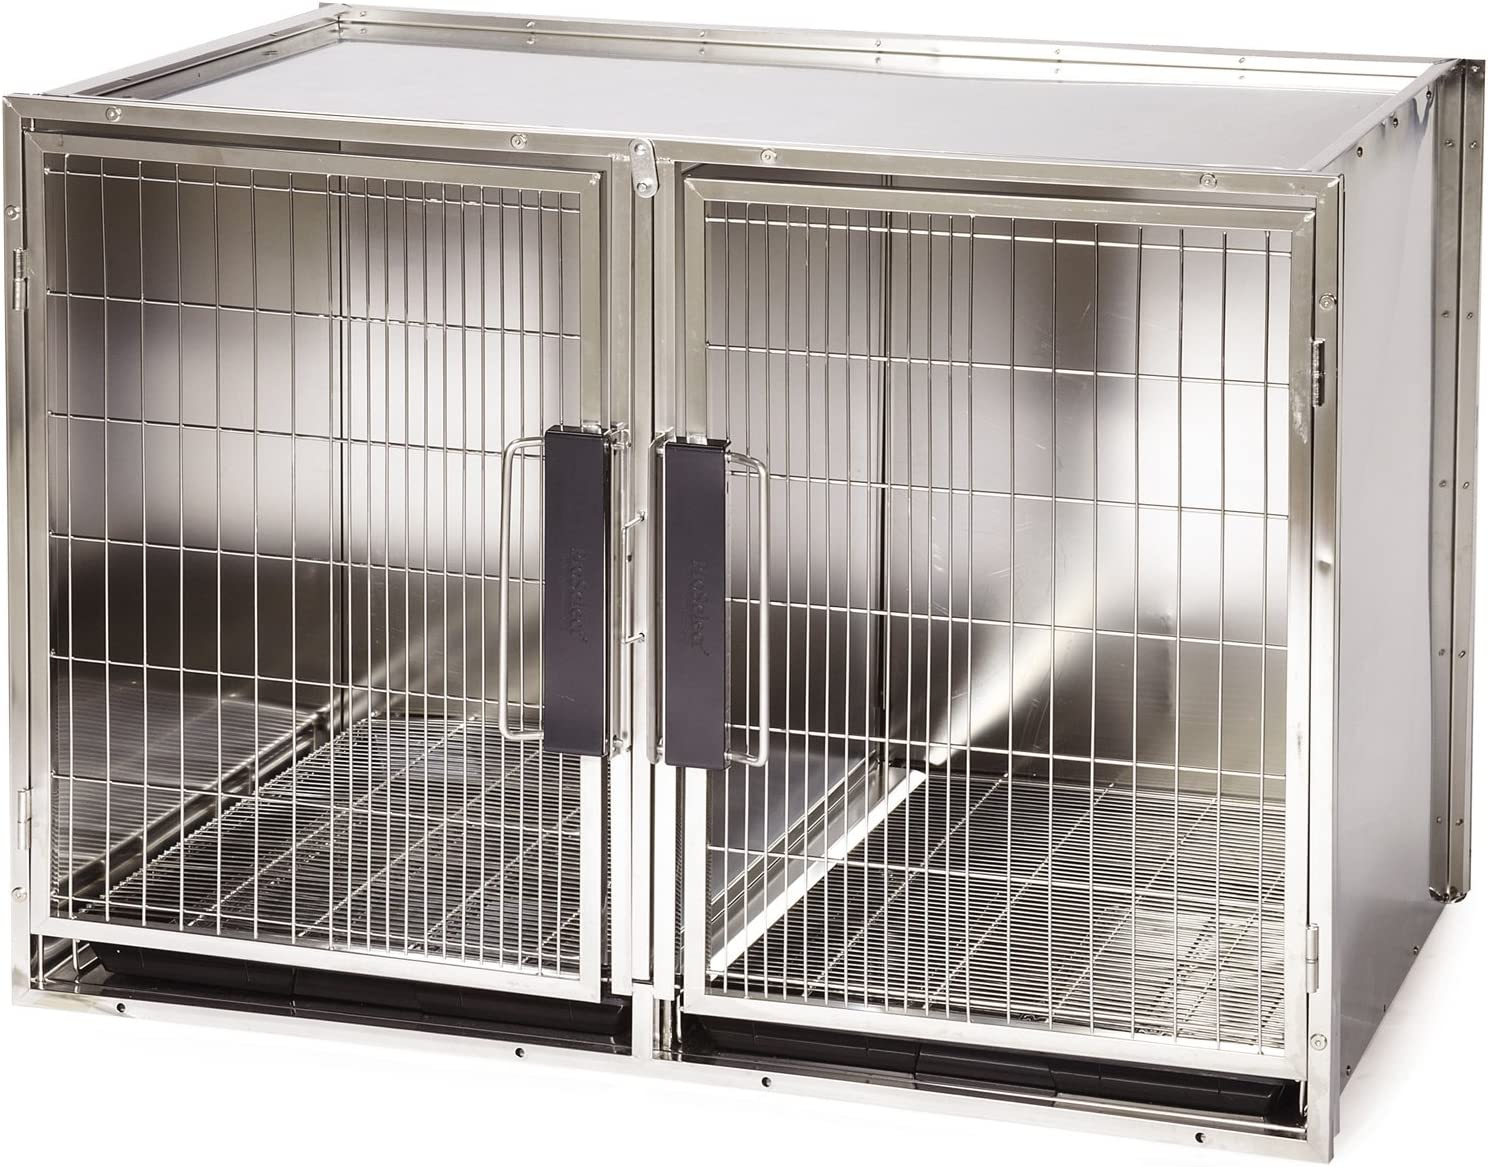 Pro Select 100% quality warranty! Stainless Steel Kennel safety Modular